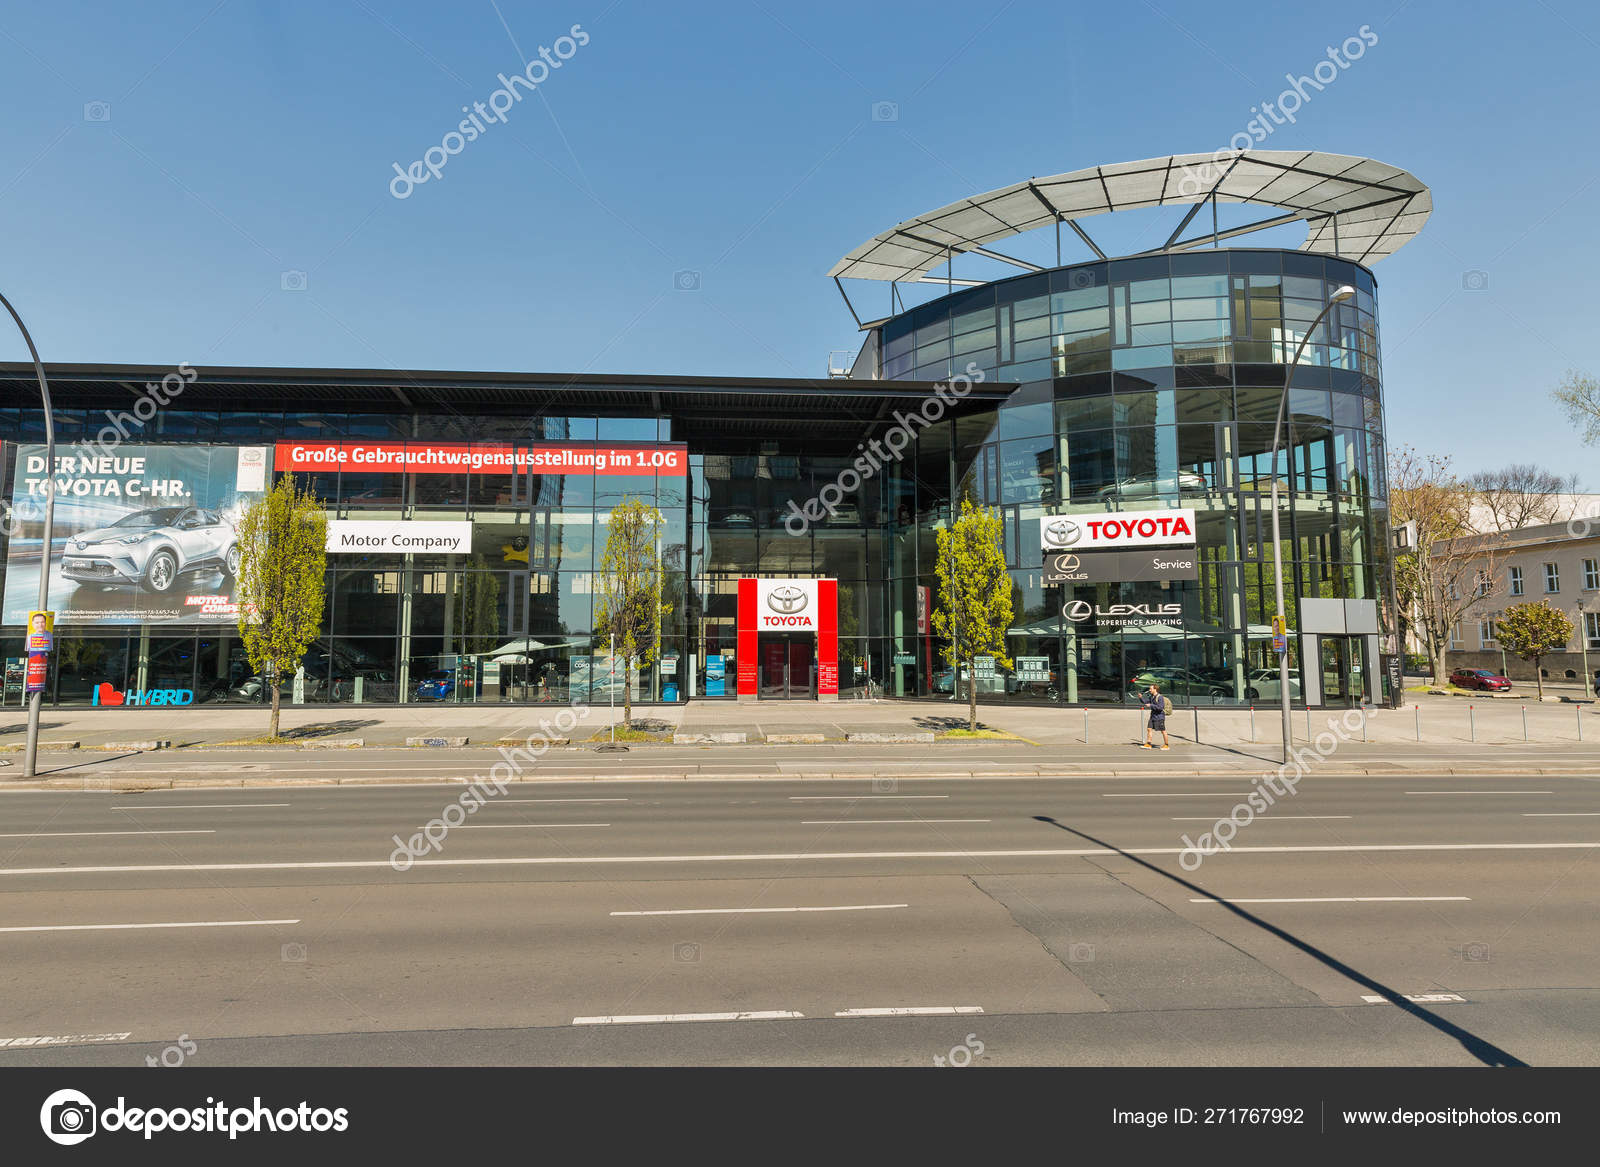 Toyota Lexus Car Showroom Exterior In Berlin Germany Stock Editorial Photo Panama7 271767992